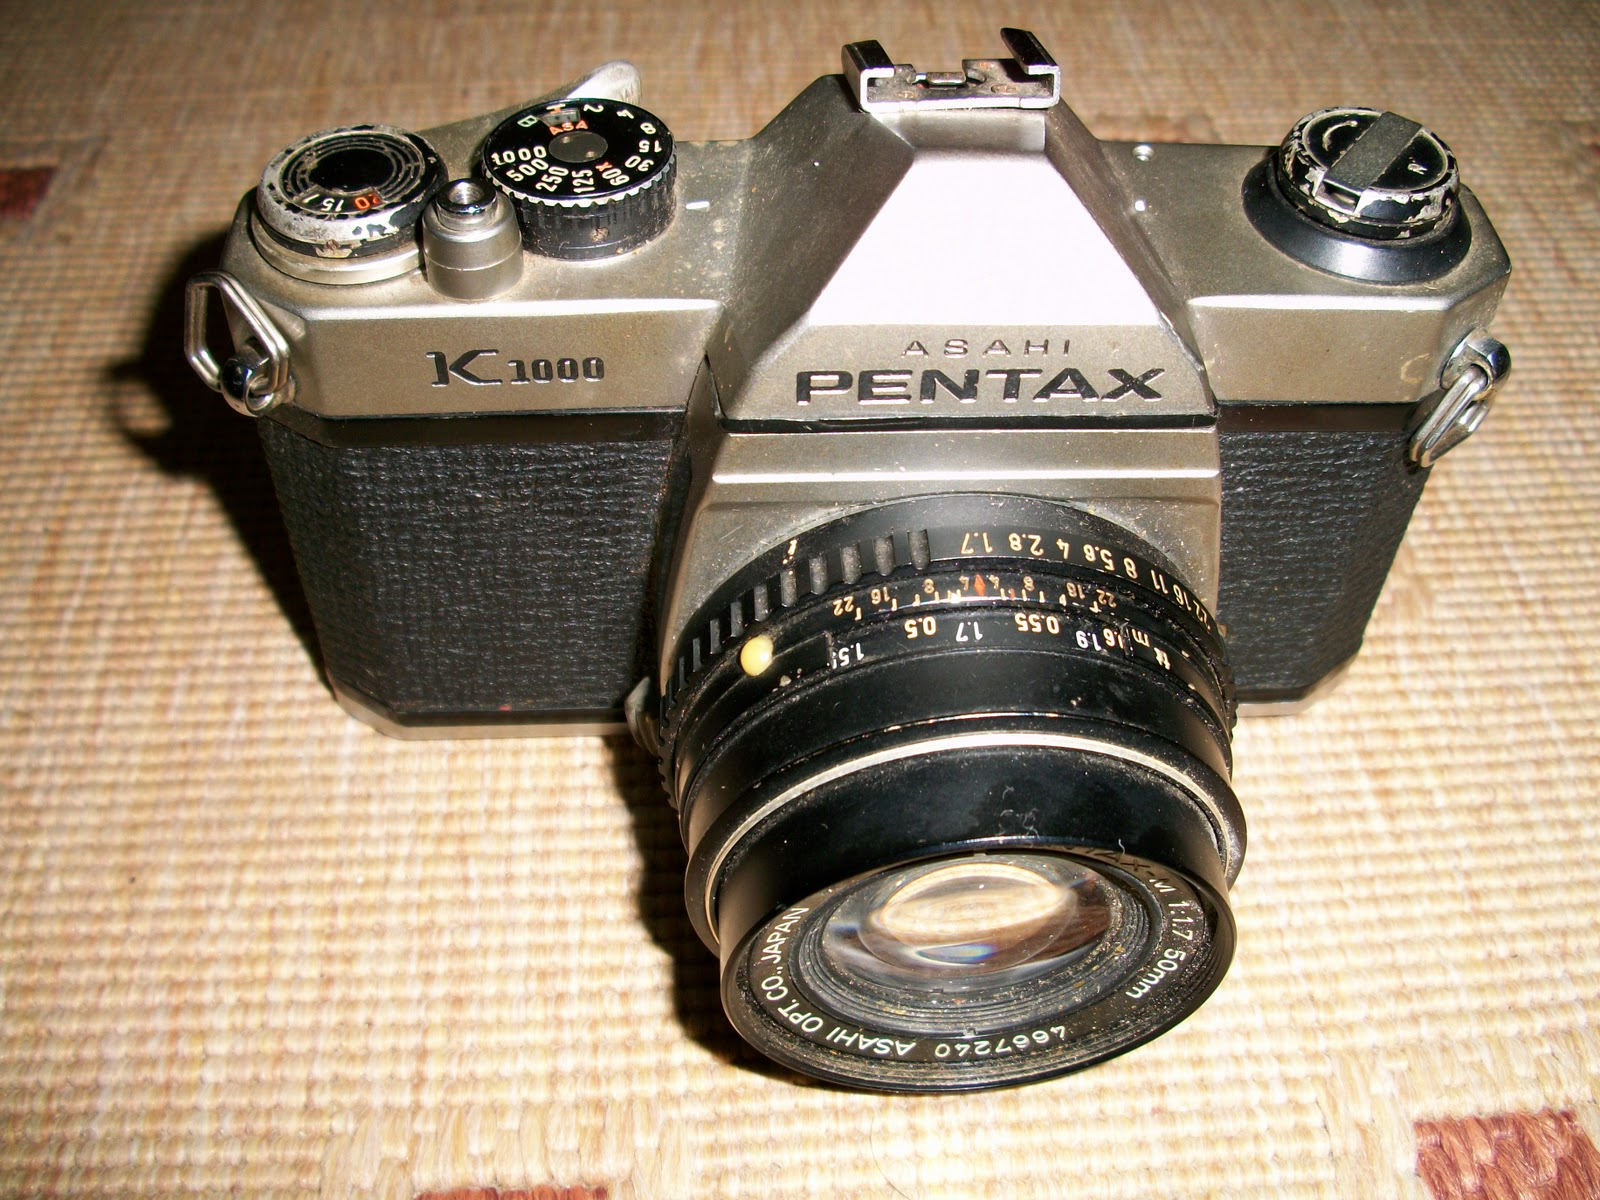 pentax k1000 se manual user guide manual that easy to read u2022 rh lenderdirectory co pentax k1000 service manual pdf asahi pentax k1000 owners manual